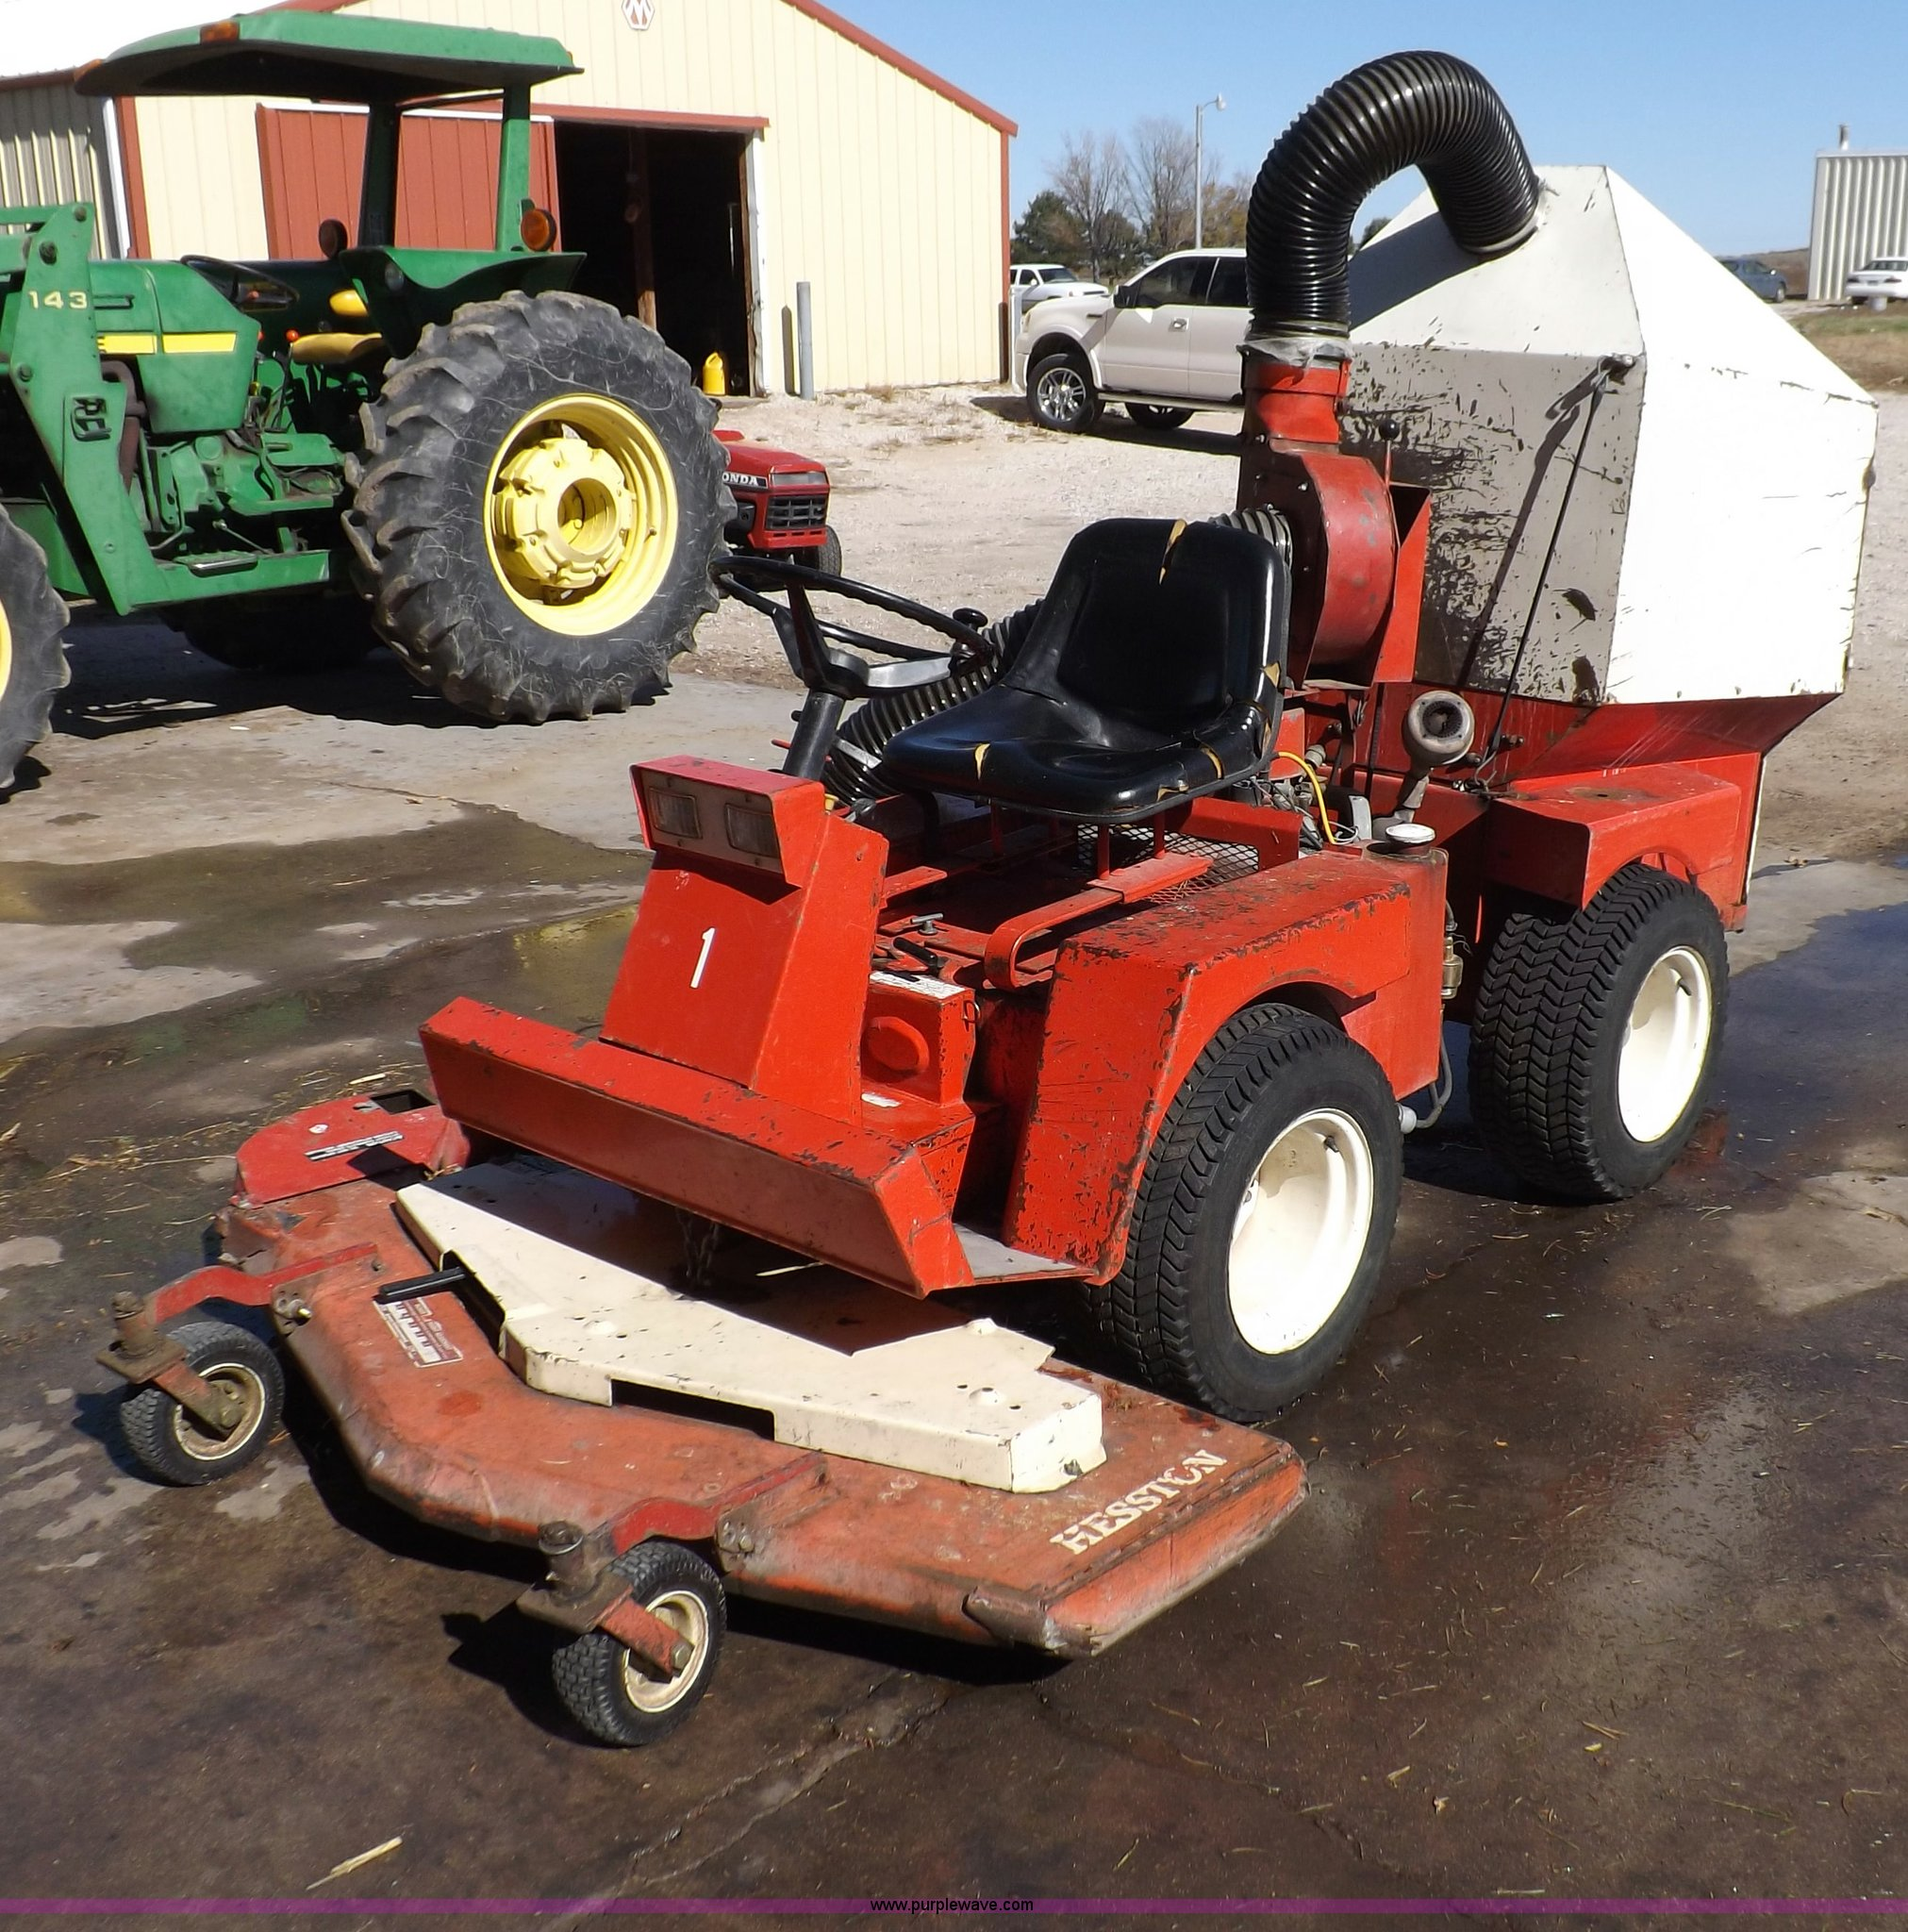 Hesston Front Runner 160 lawn mower | Item F6197 | SOLD! Wed